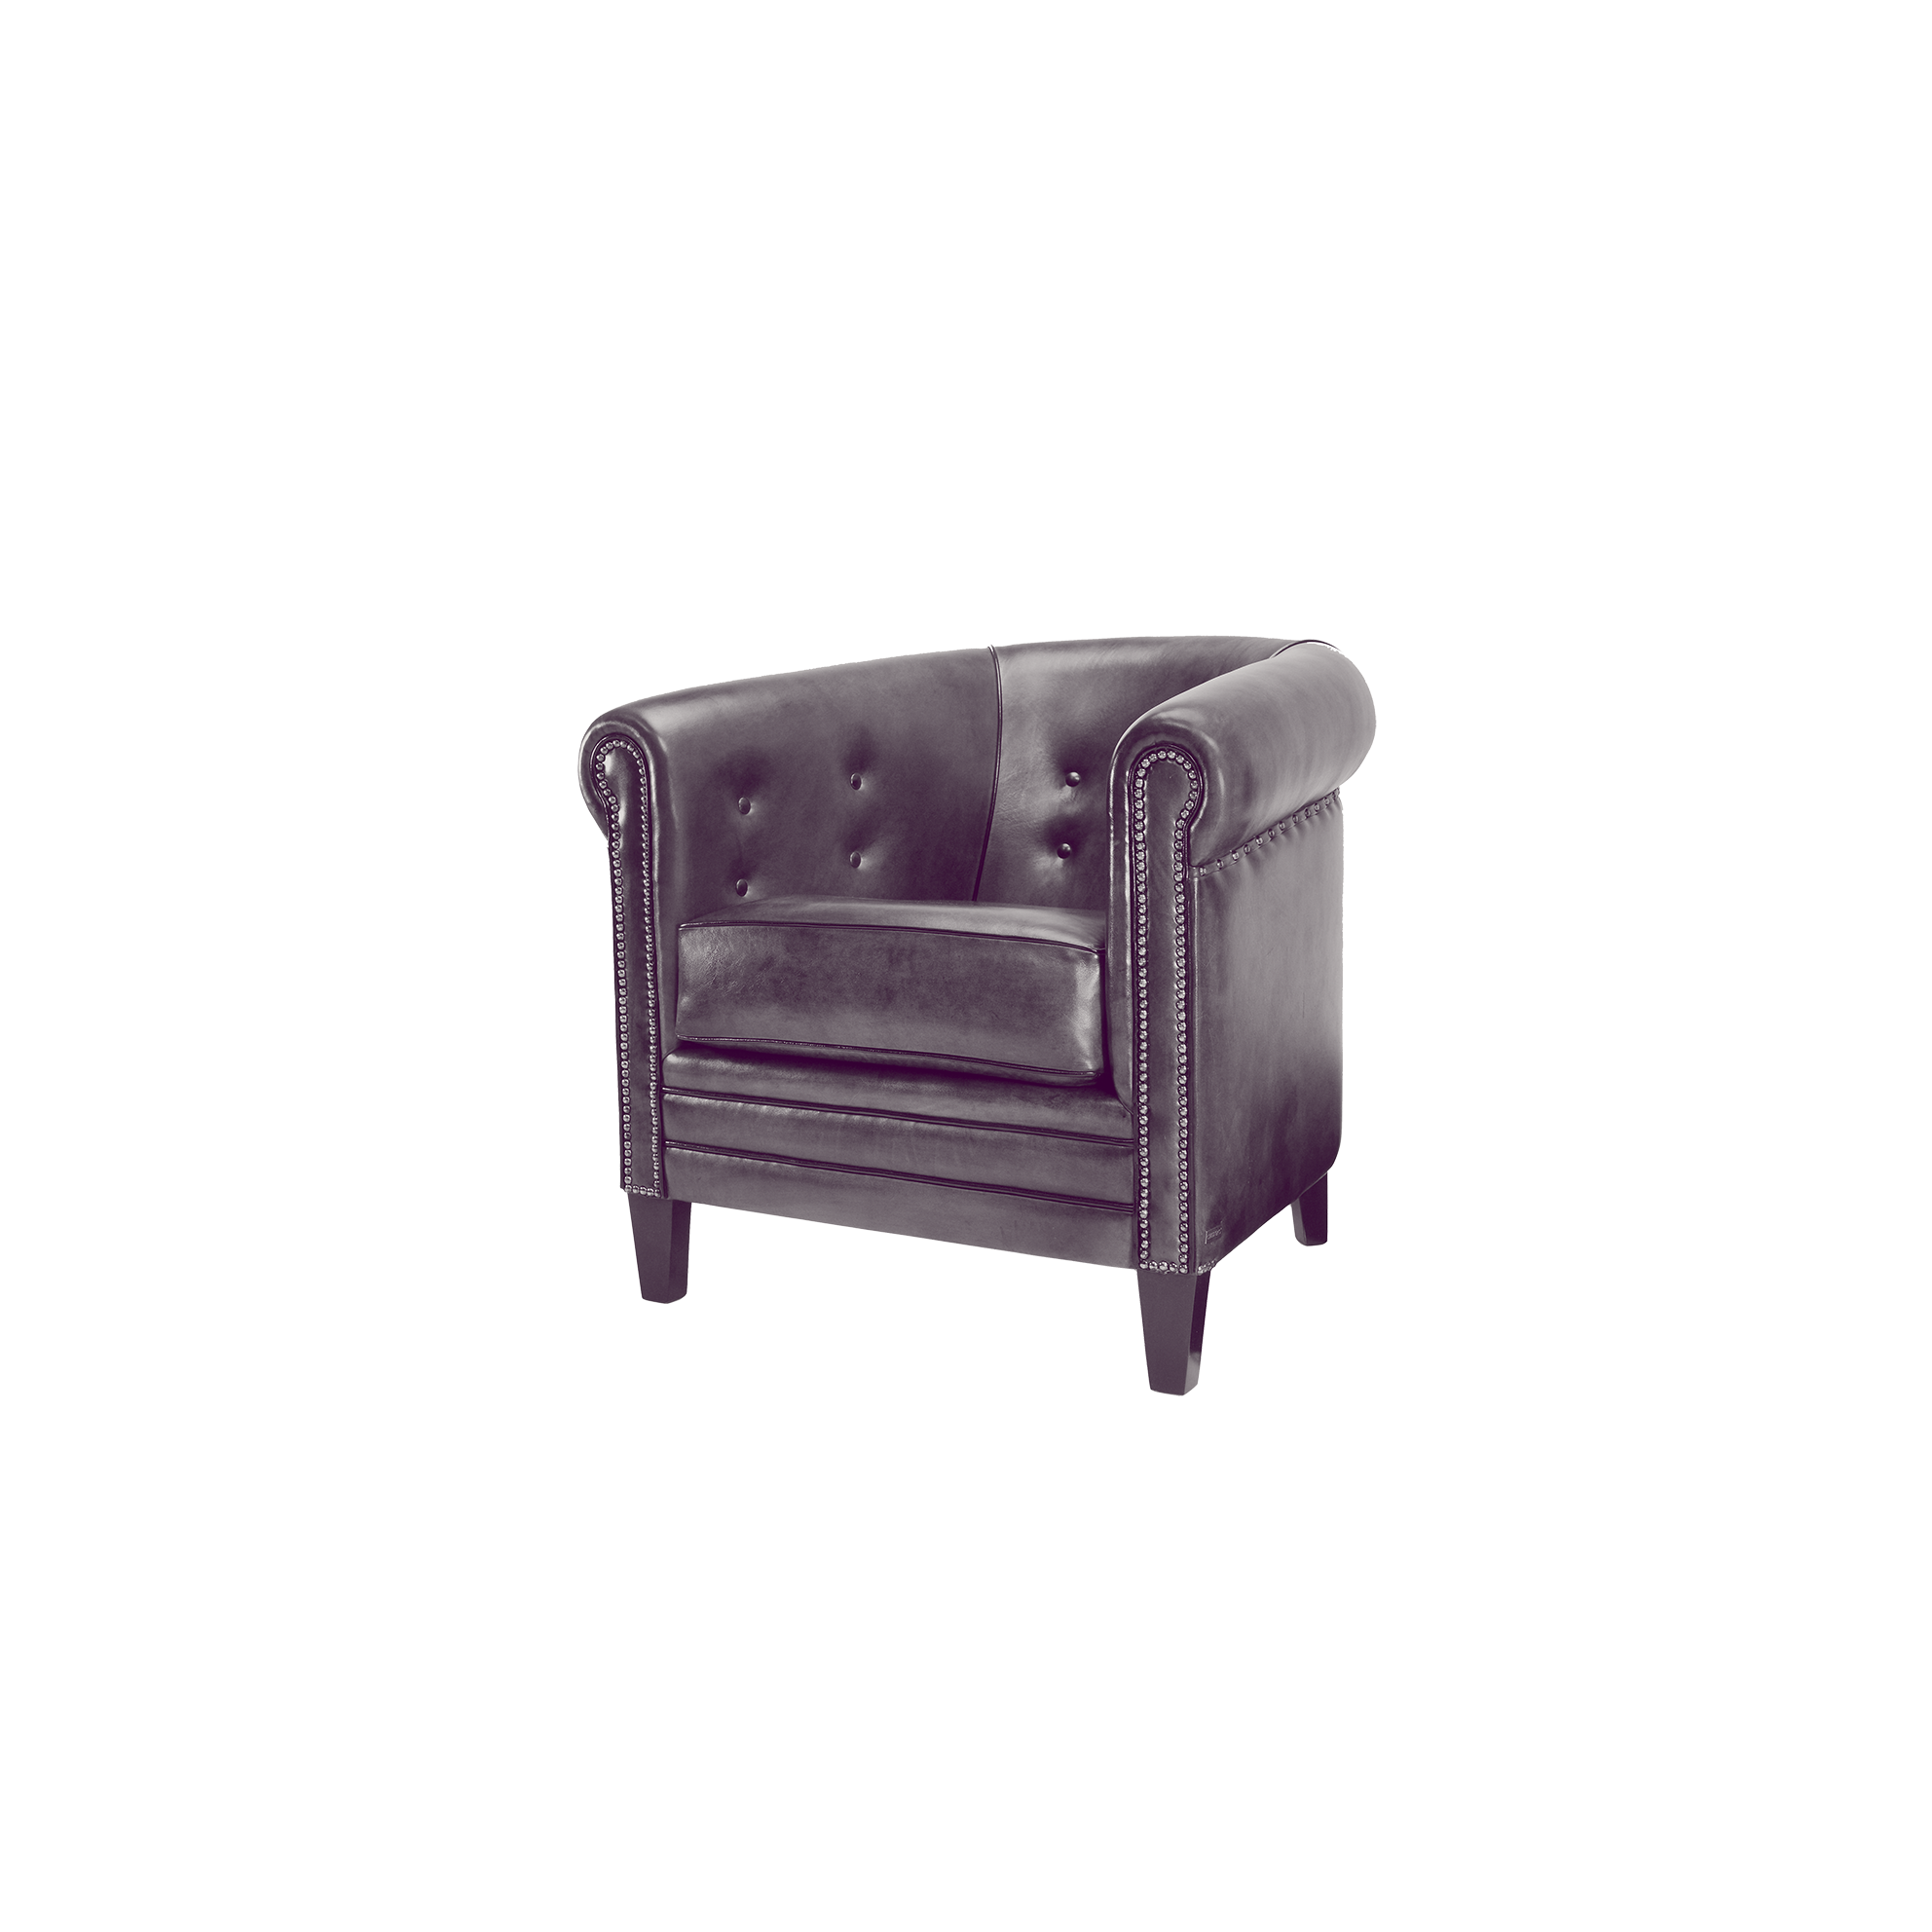 leather single seater armchair  classic design